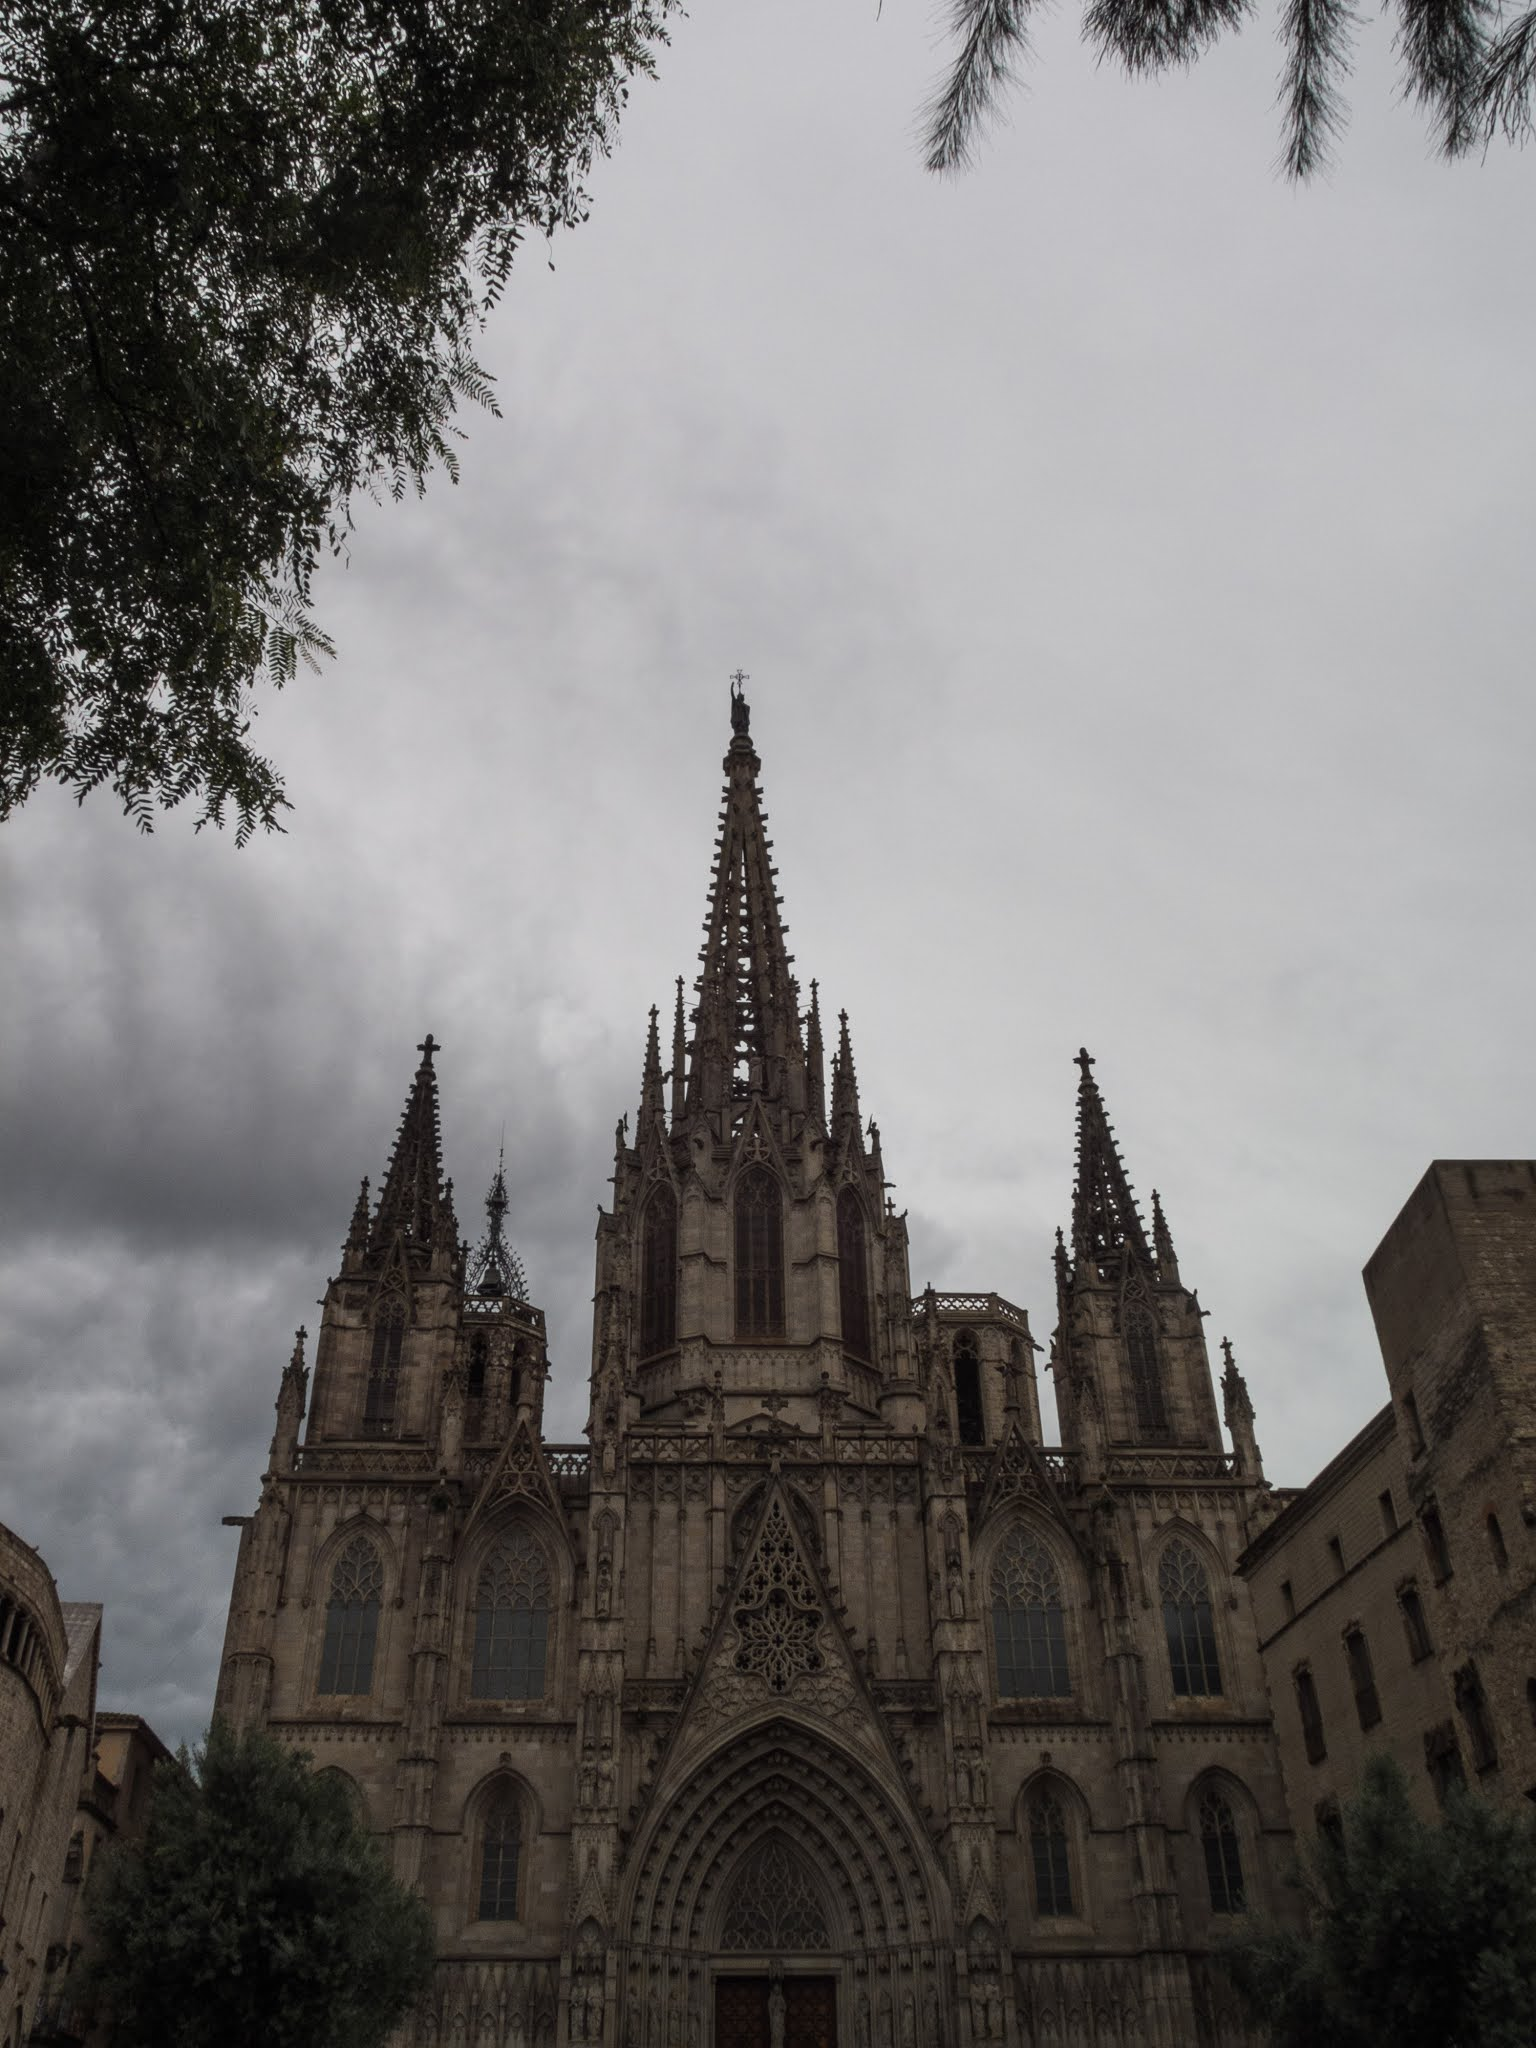 Cathedral of Barcelona captured underneath a pine tree on a rainy day.